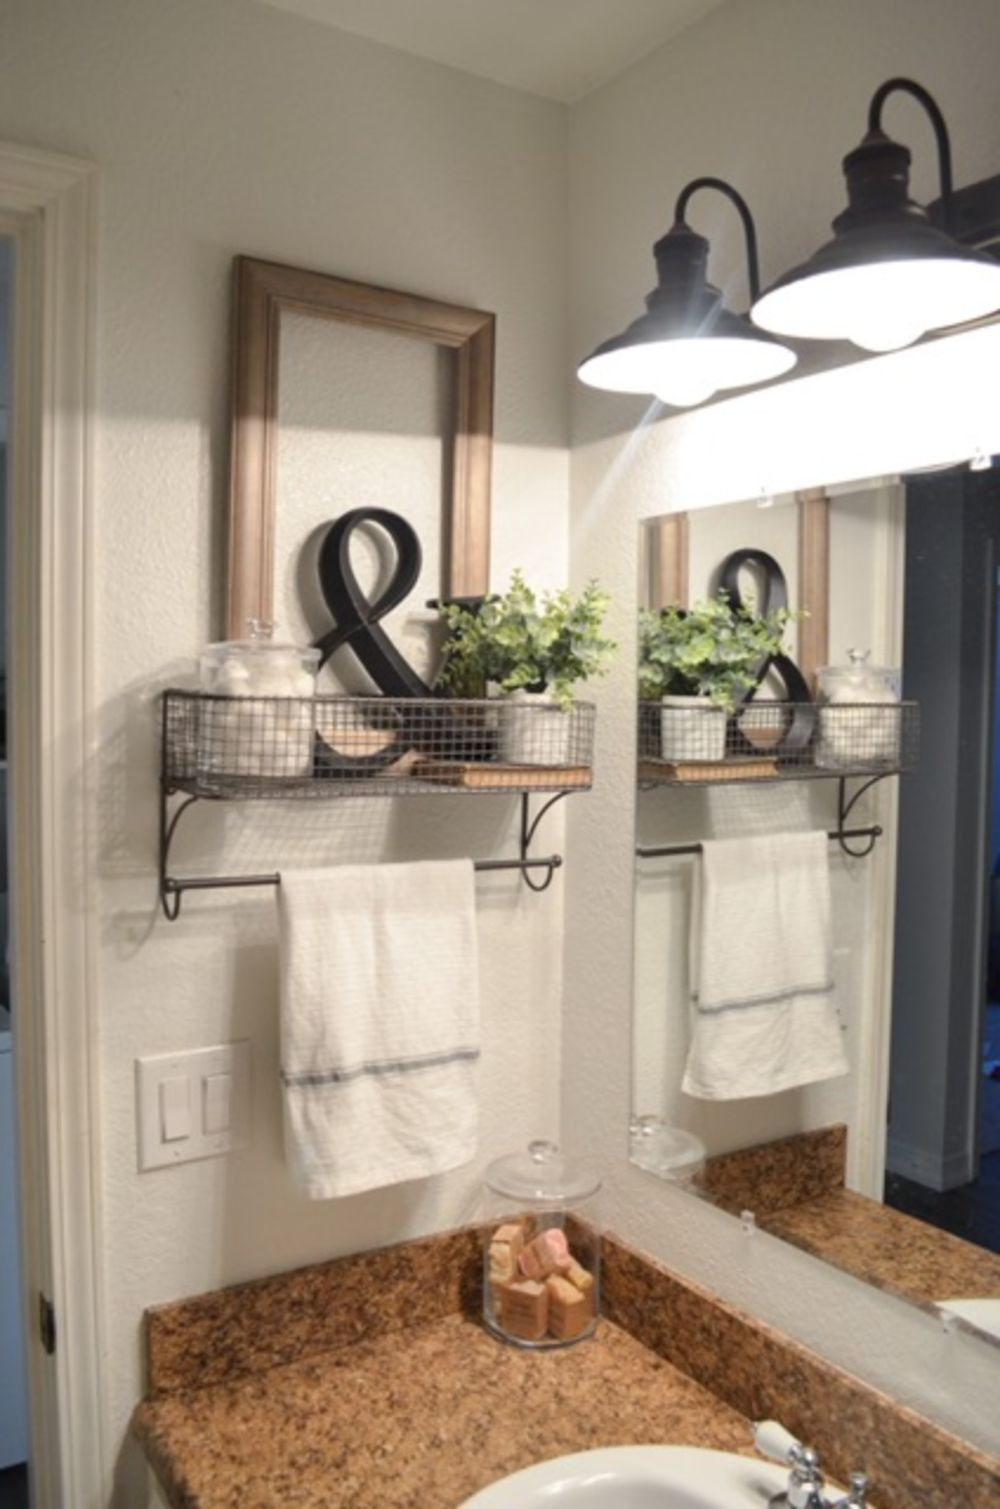 46 Wonderful Rustic Bathroom Decorating Ideas | Rustic bathrooms ...